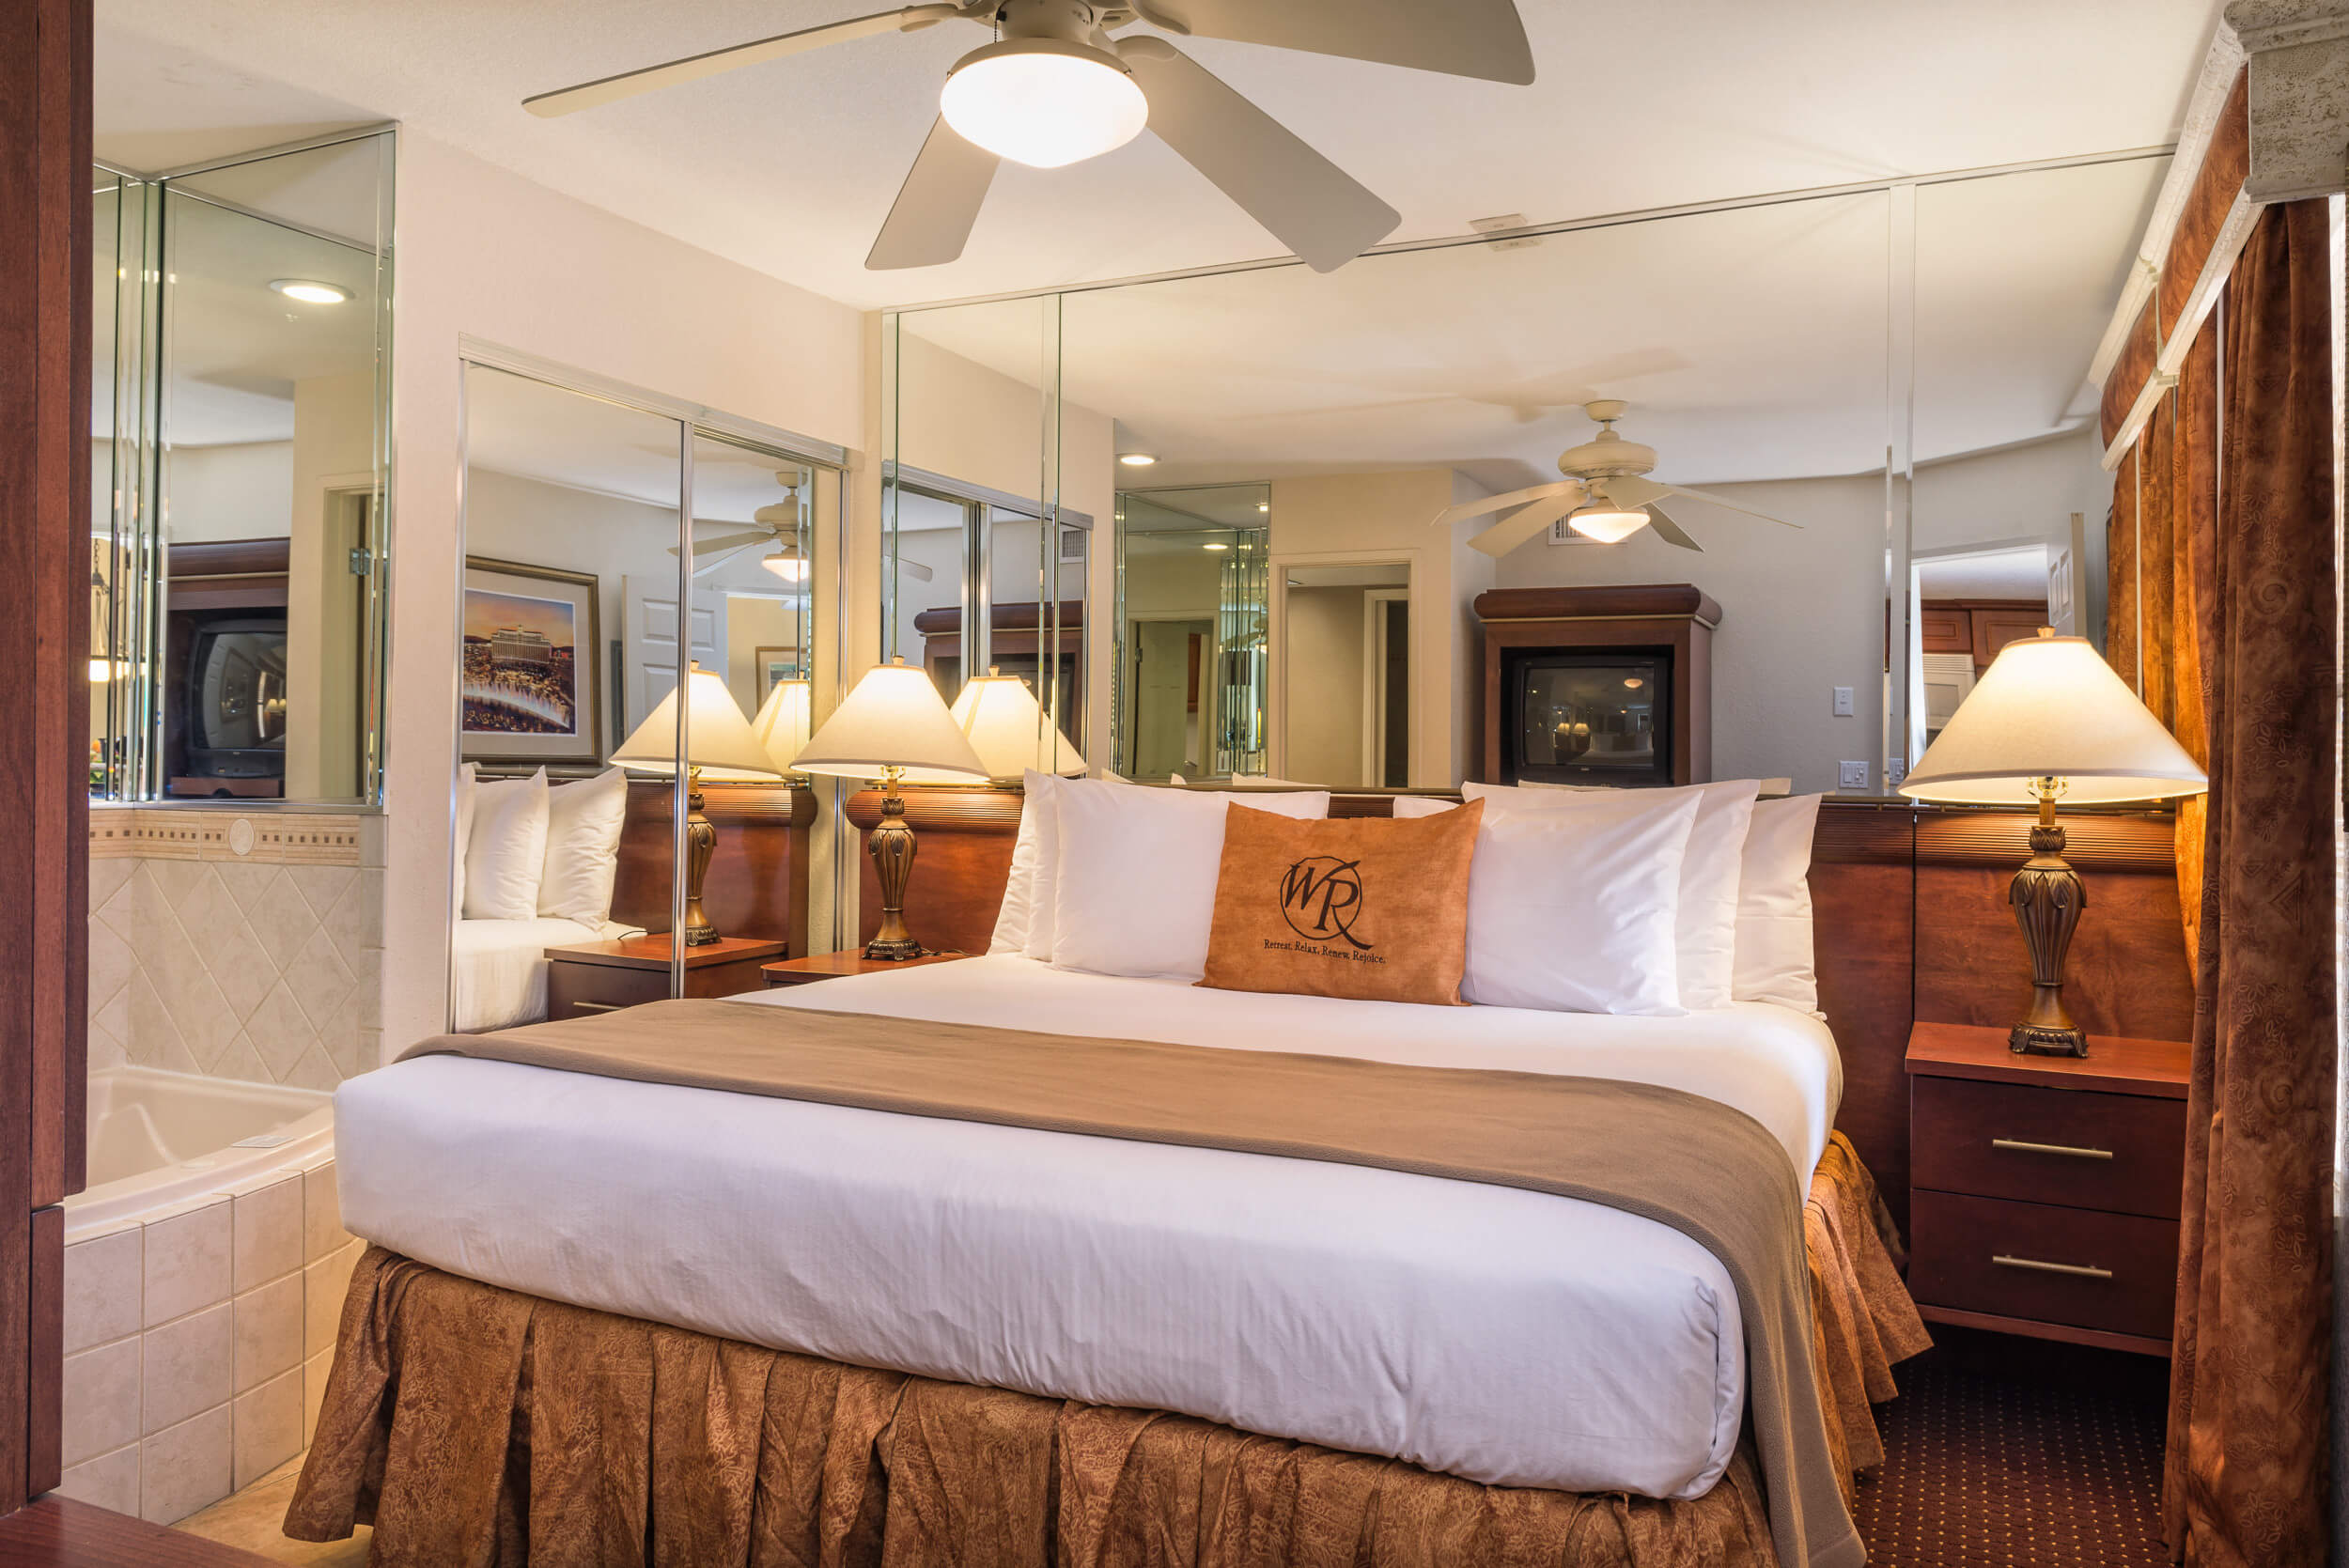 During your Las Vegas Vacation, you want the best rooms and suites to unwind after exploring the world-famous Las Vegas Strip! The One-Bedroom Villa at Westgate Flamingo Bay Resort provides that spot to relax and unwind after a fun-filled day in Sin City!